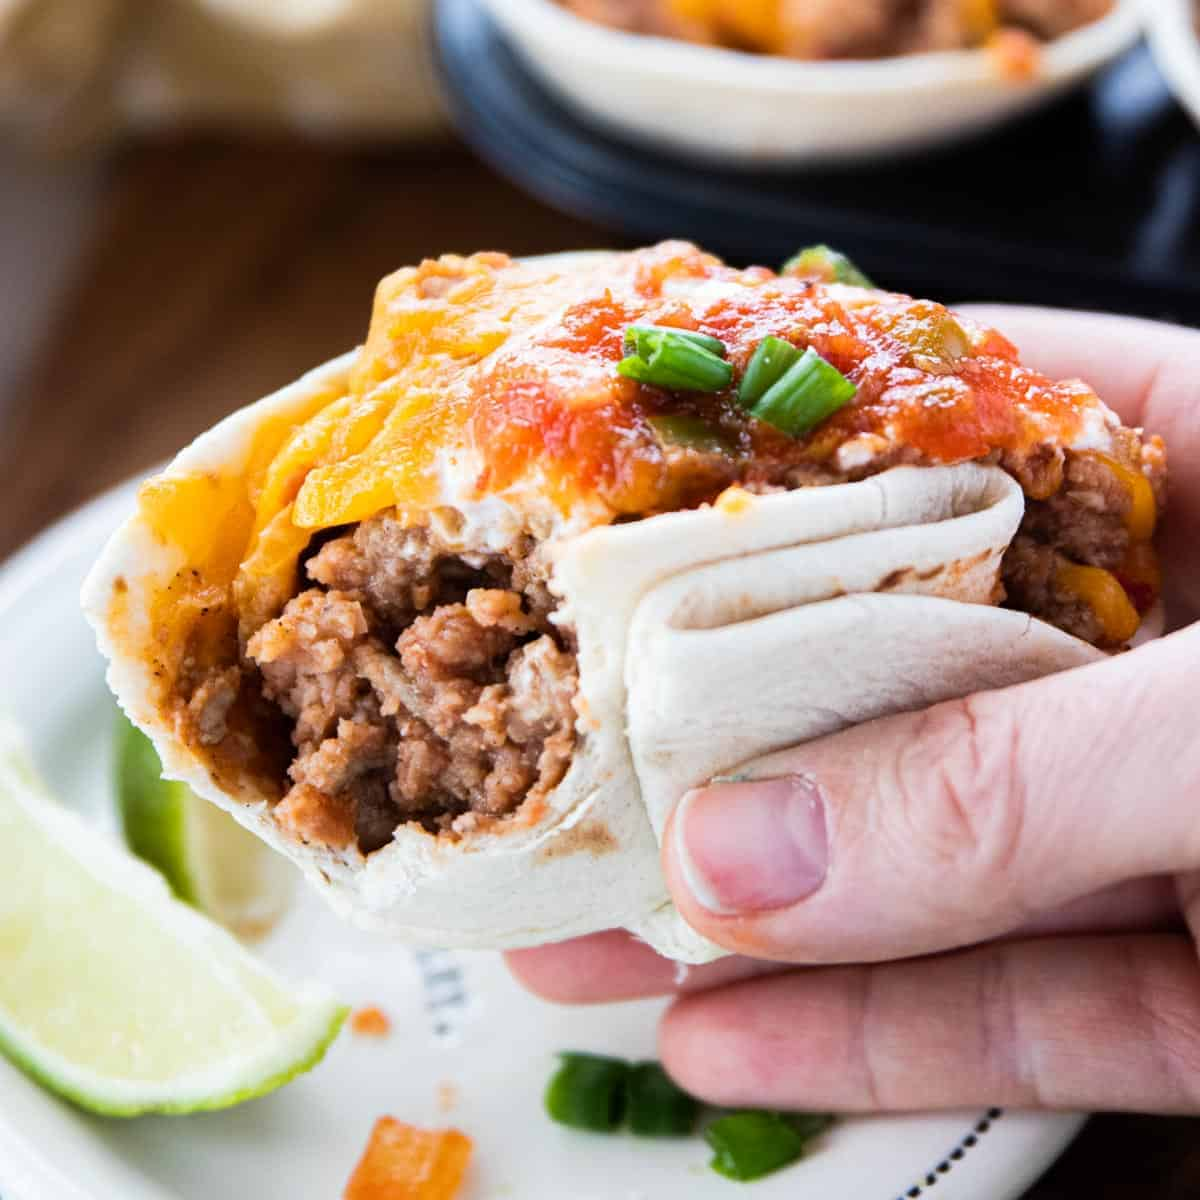 Baked Taco Cups showing a hand holding a cooked taco cup with toppings.